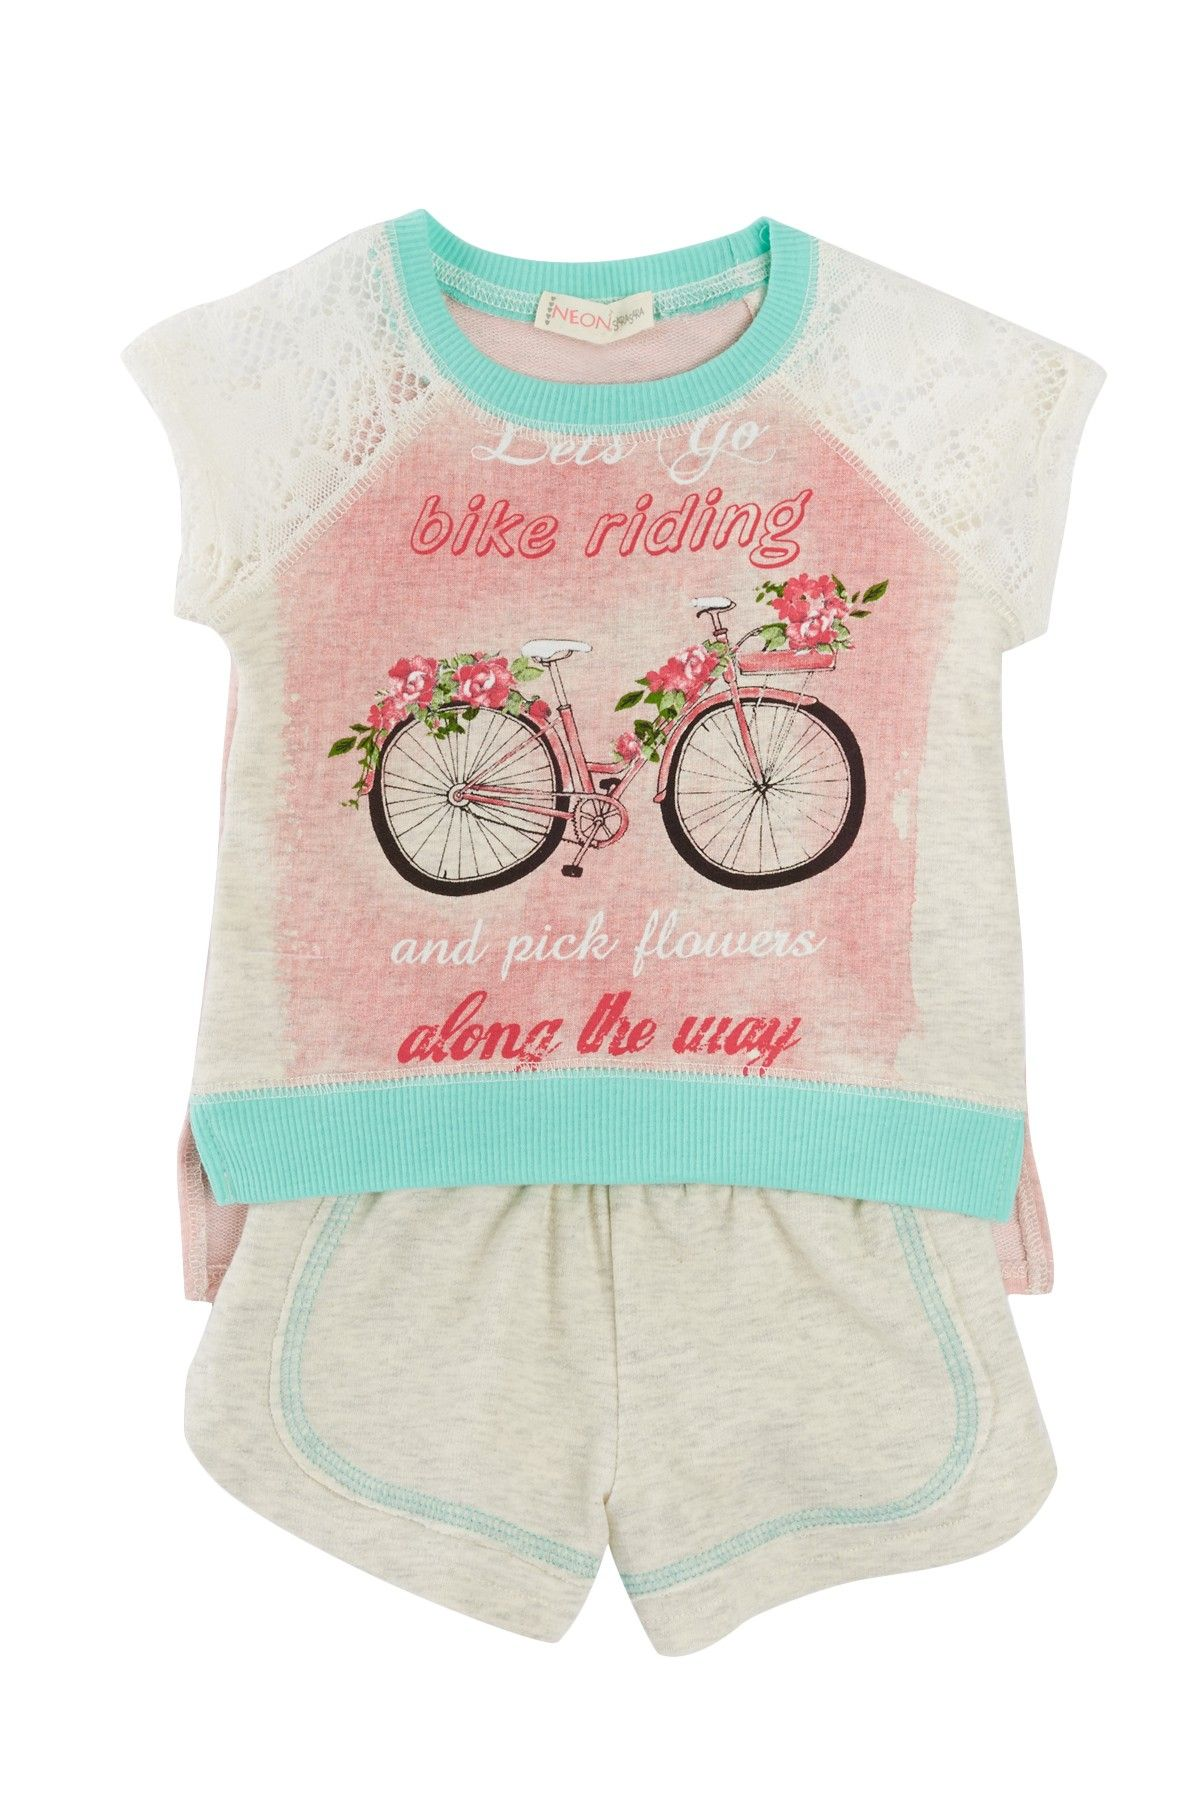 8fdb92c7cd60 Bicycle Graphic Top & Gym Short Set (Toddler Girls) by NEON by Sara Sara on  @nordstrom_rack